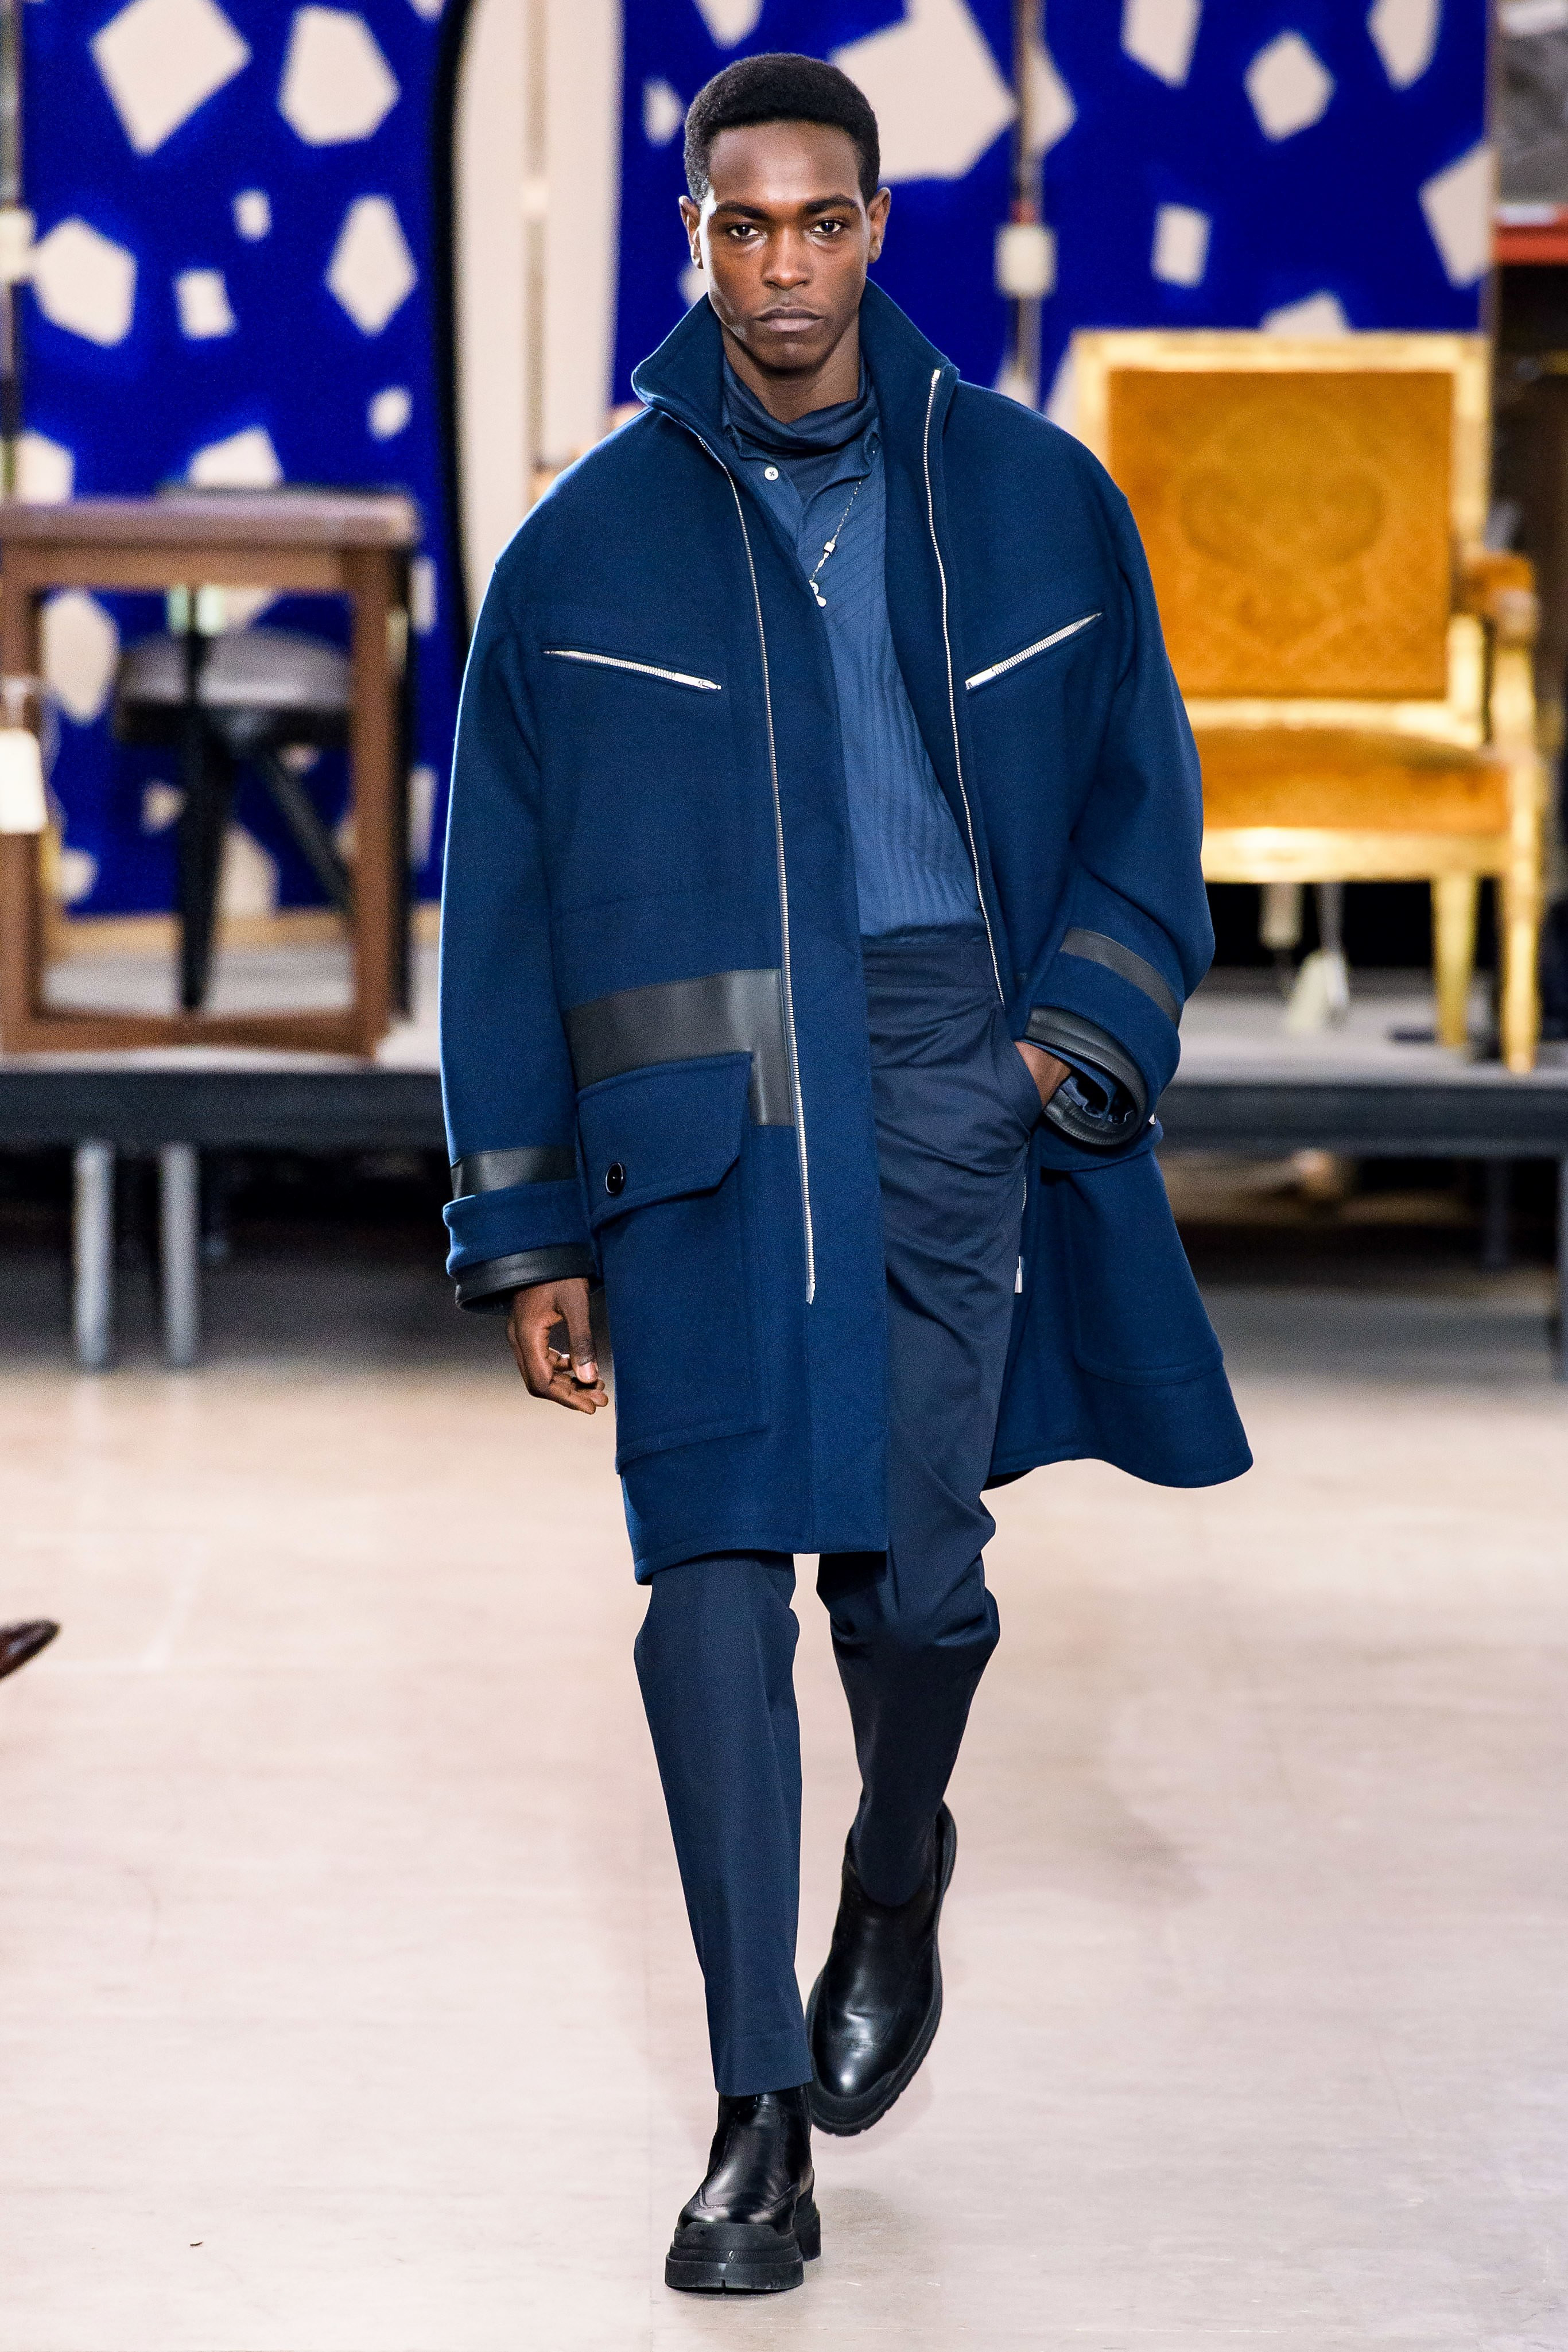 Hermes Fall/Winter 2019 Menswear Collection